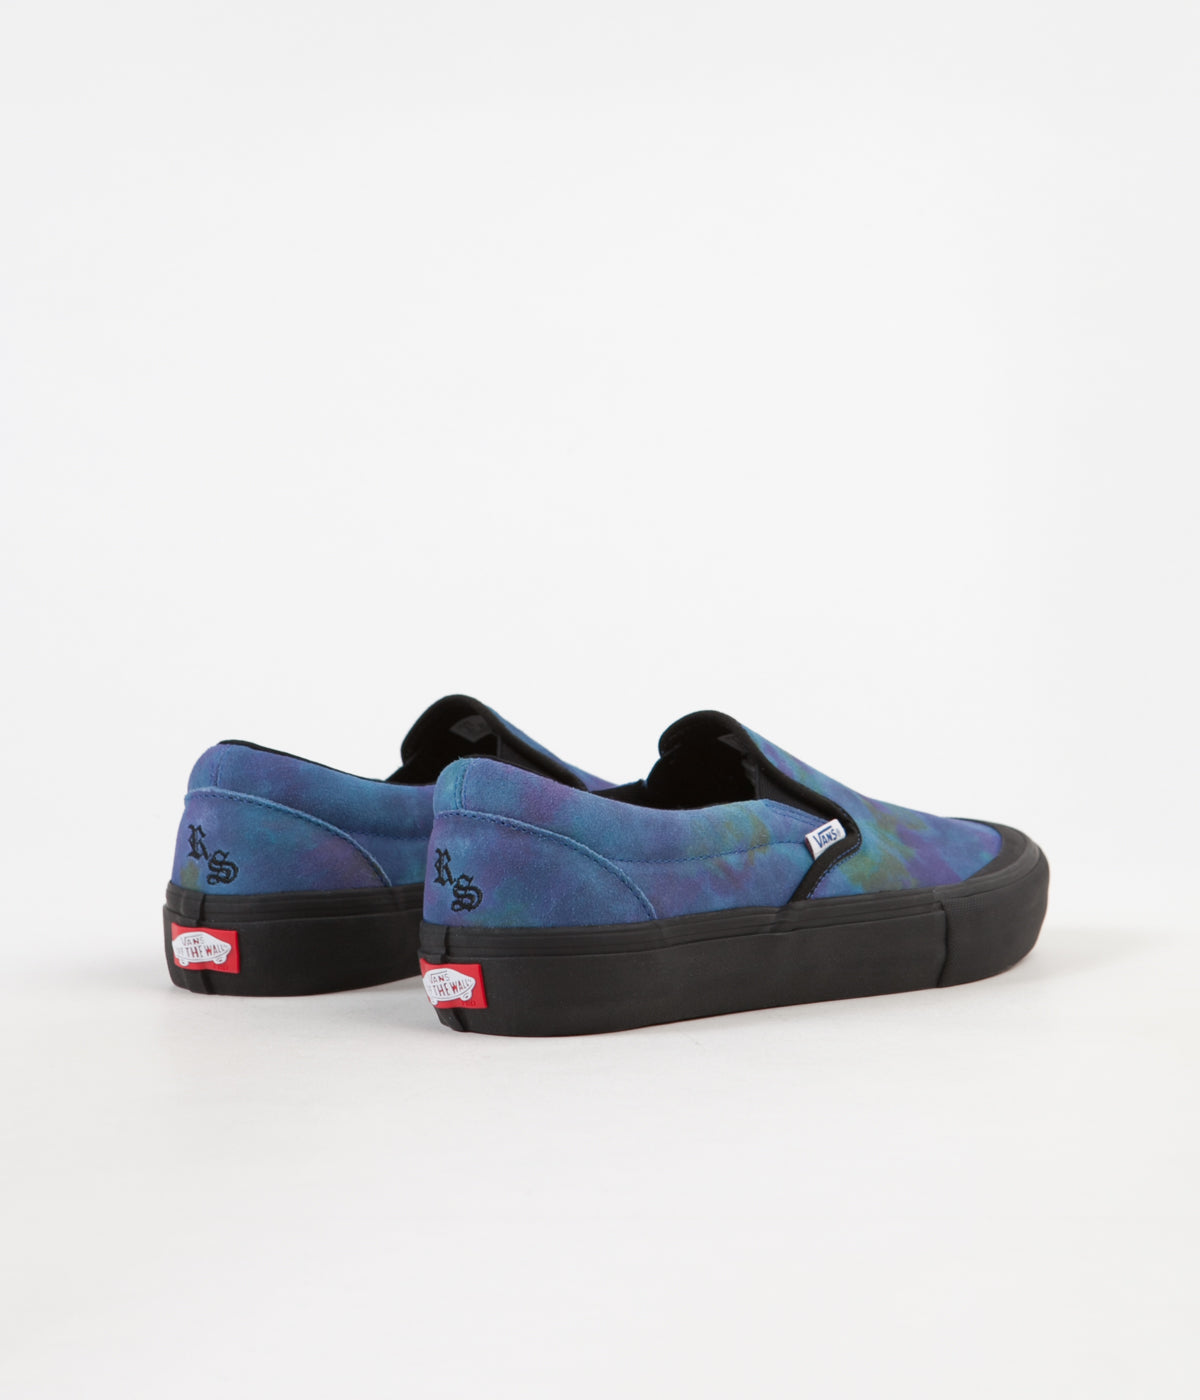 8f42df4671aa02 ... Vans Slip-On Pro Shoes - (Ronnie Sandoval) Northern Lights ...